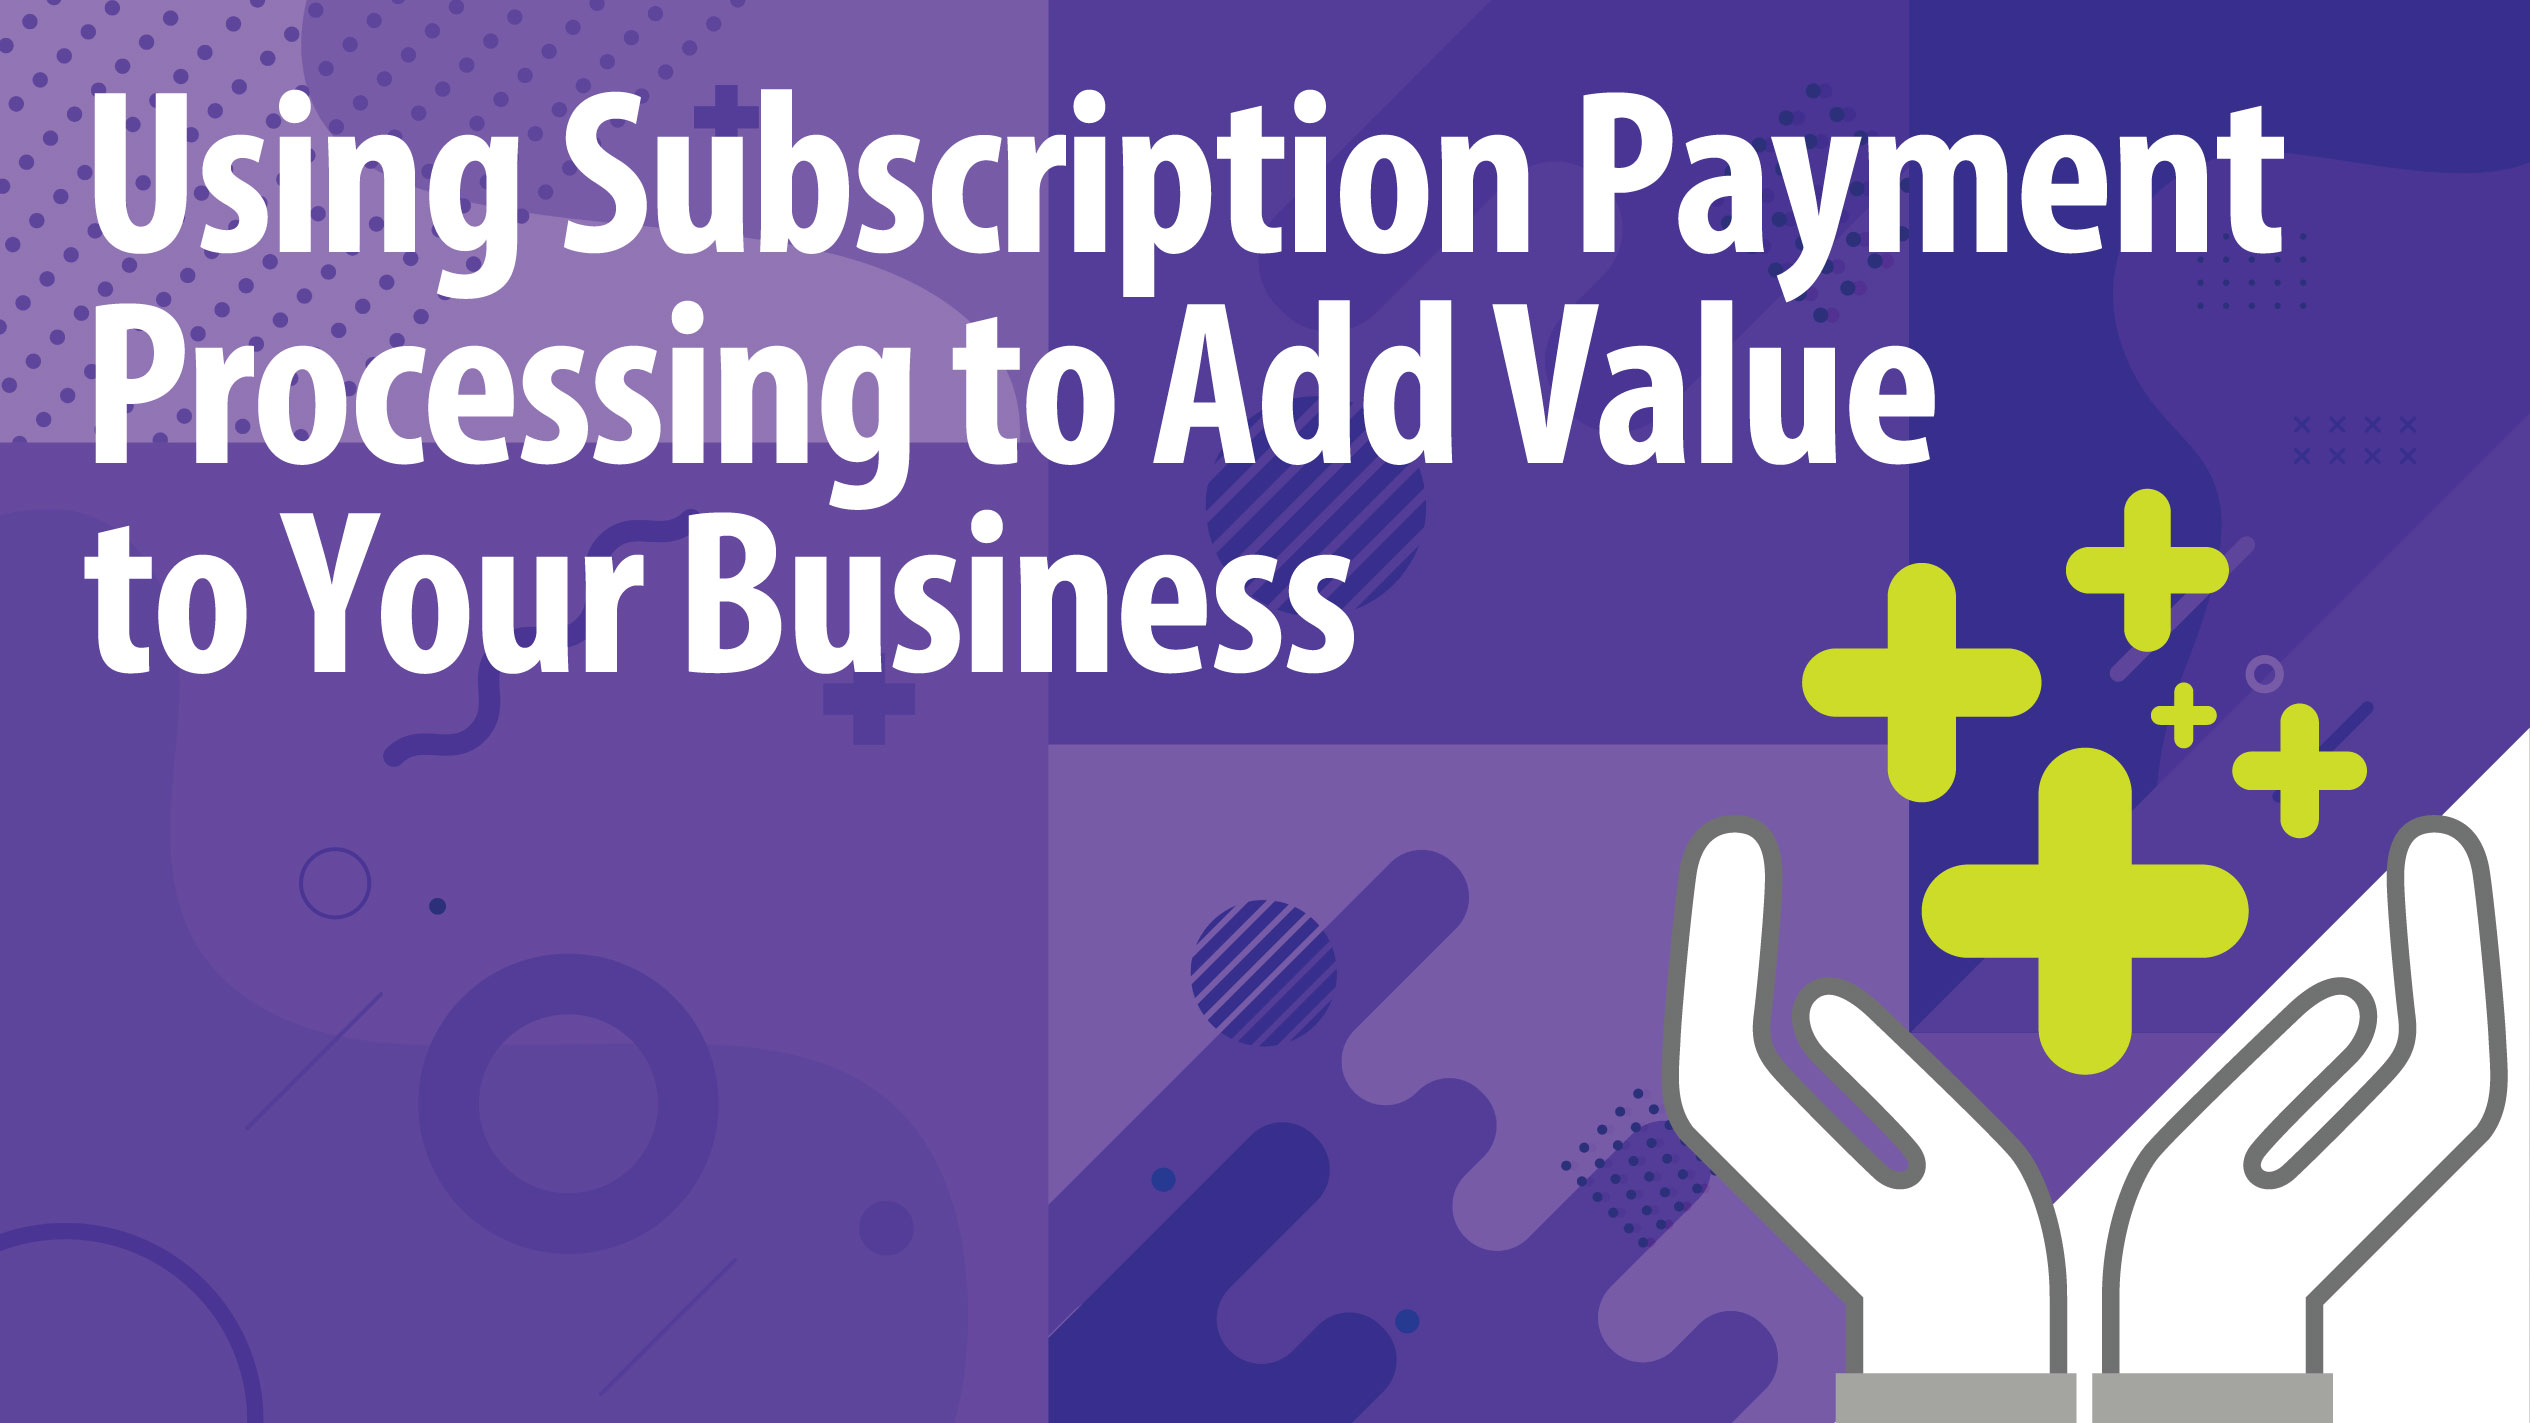 Using Subscription Payment Processing to Add Value to Your Business